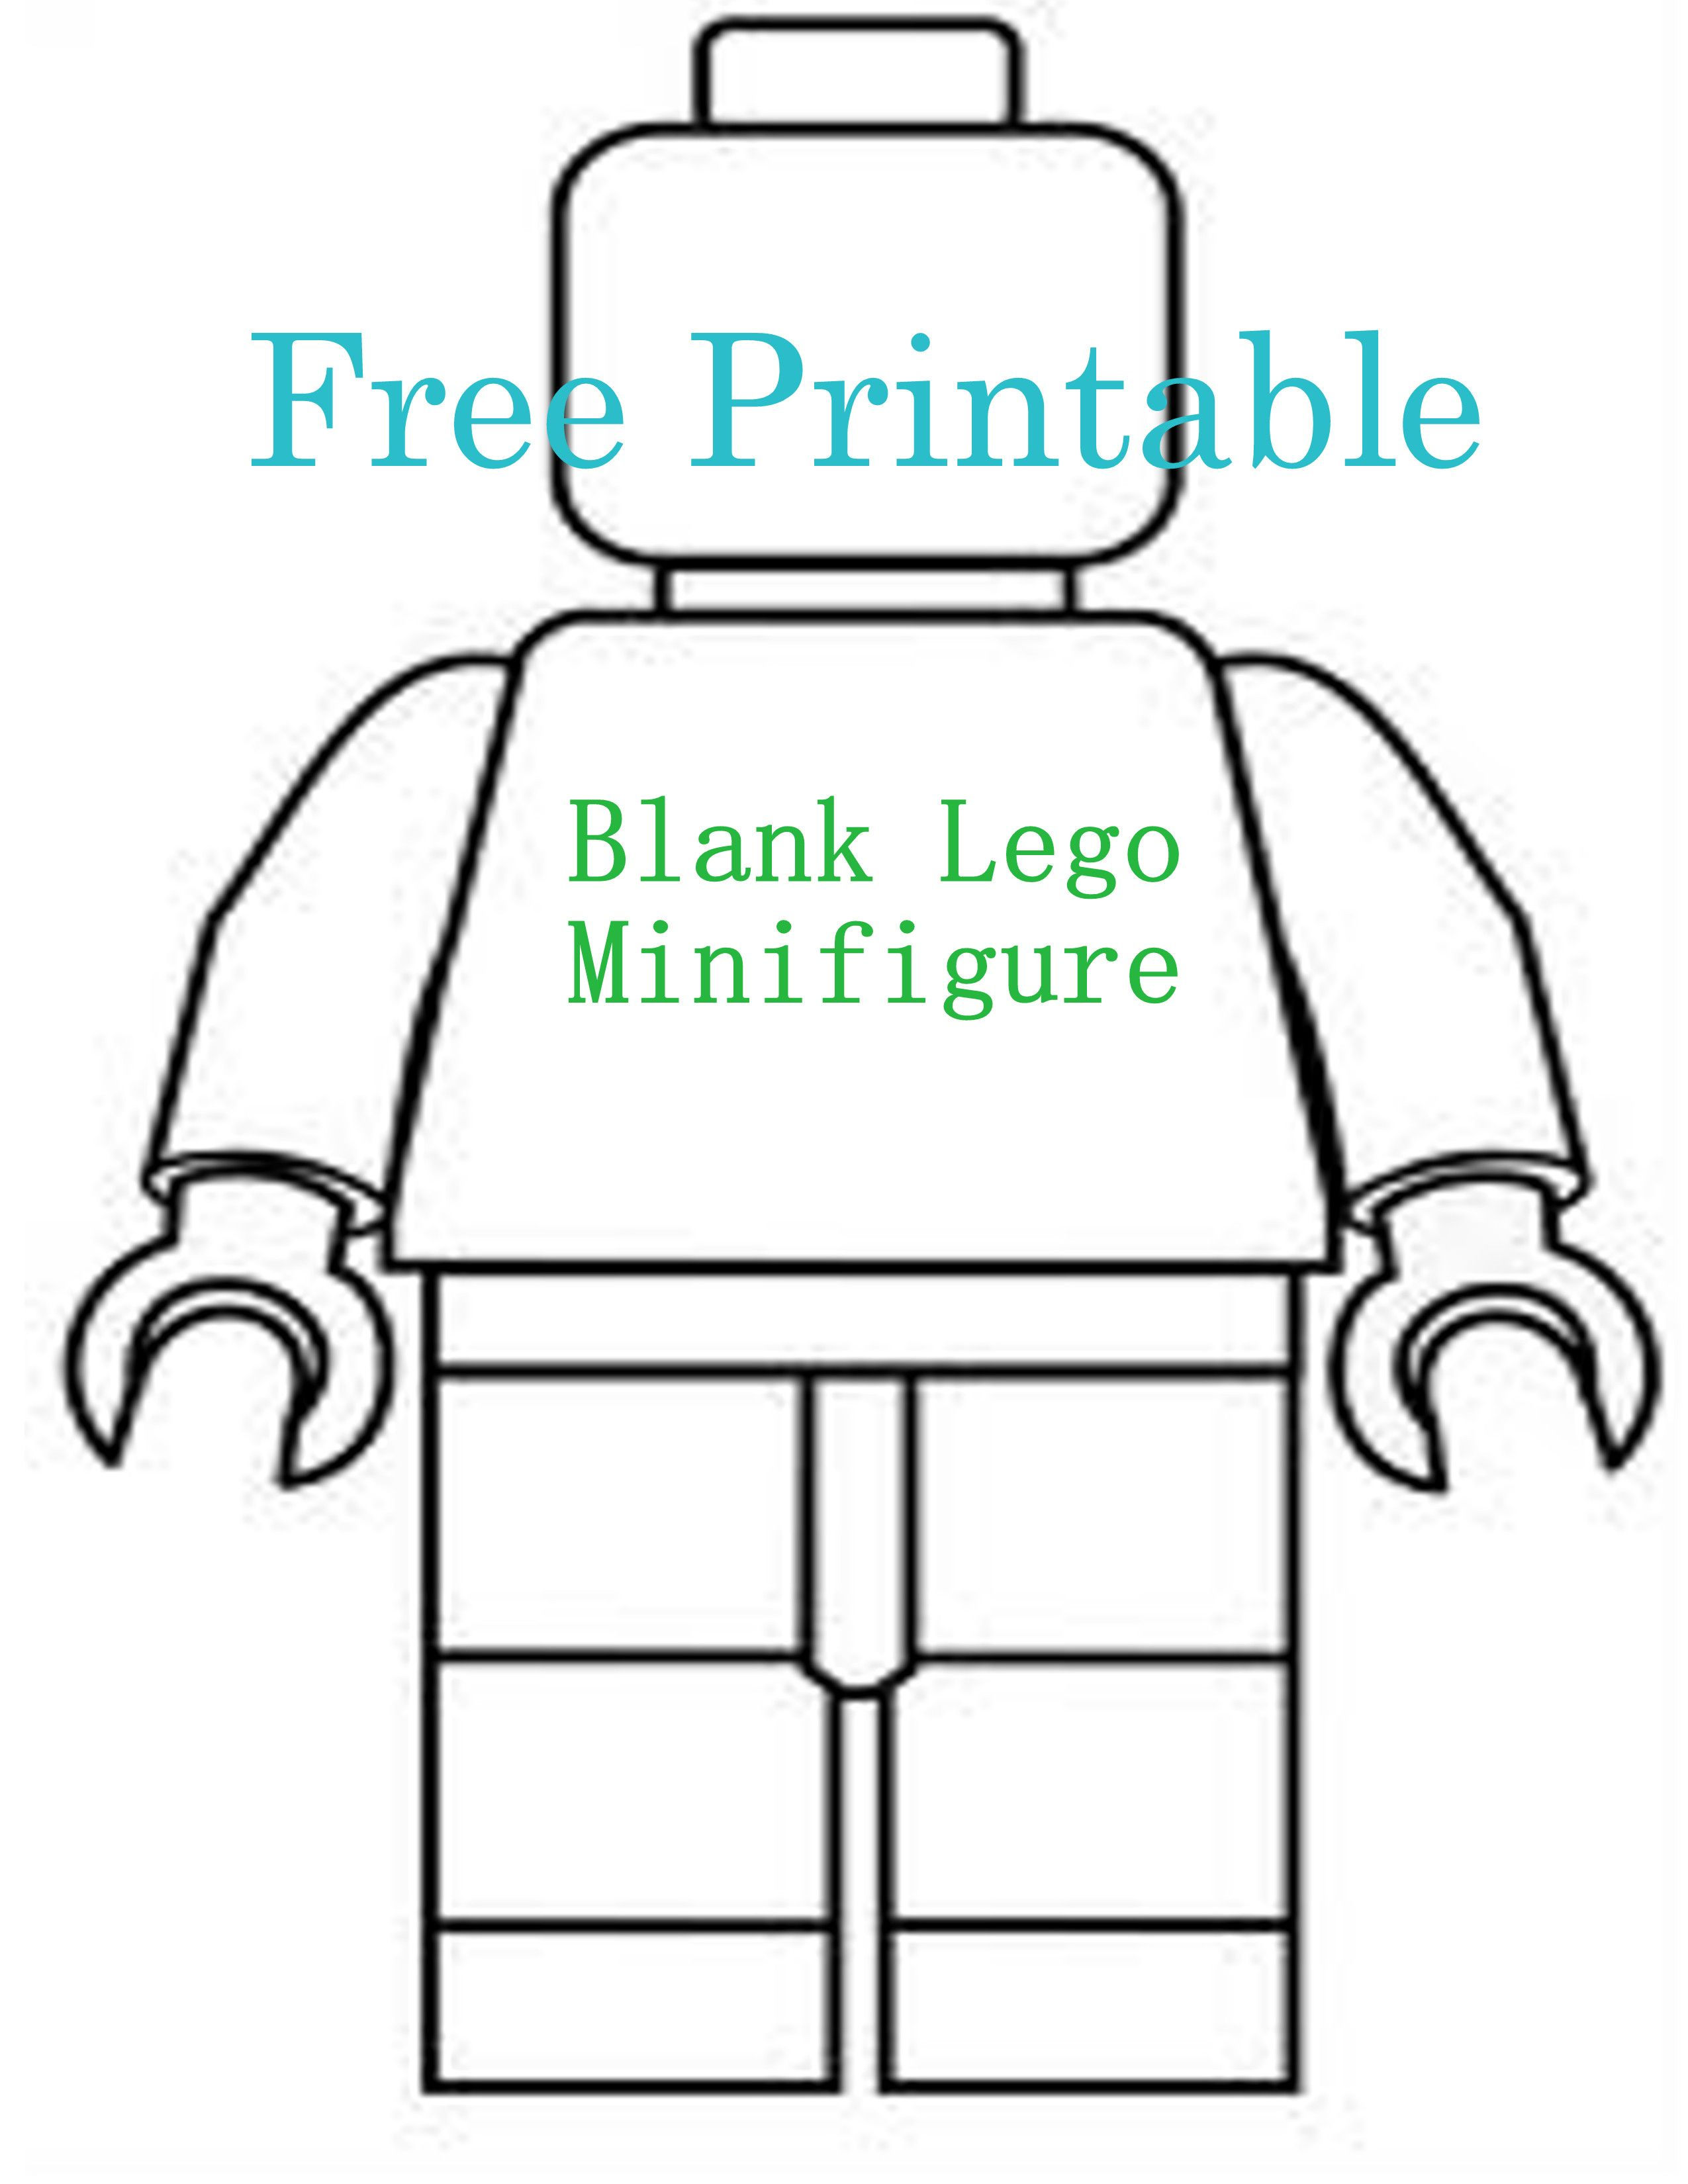 graphic about Lego Minifigure Printable titled Cost-free Printable ~ Blank Lego Minifigure coloring Lego